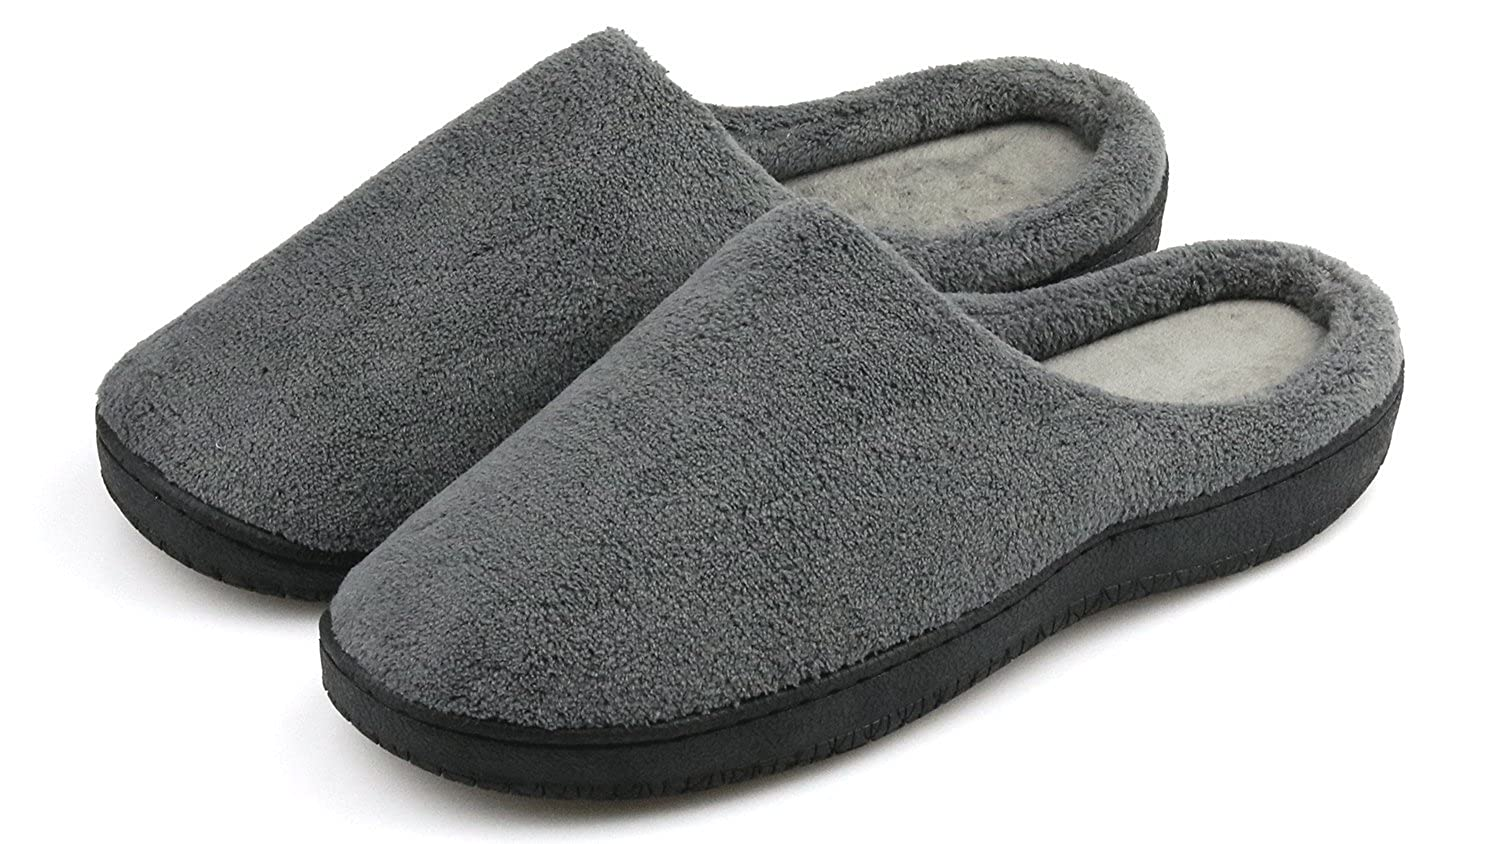 5d62eb019d9e Men s Slippers Memory Foam Warm Winter Slip on Daily Slippers Soft Fleece  House Slippers Indoor Outdoor Anti Skid Sole